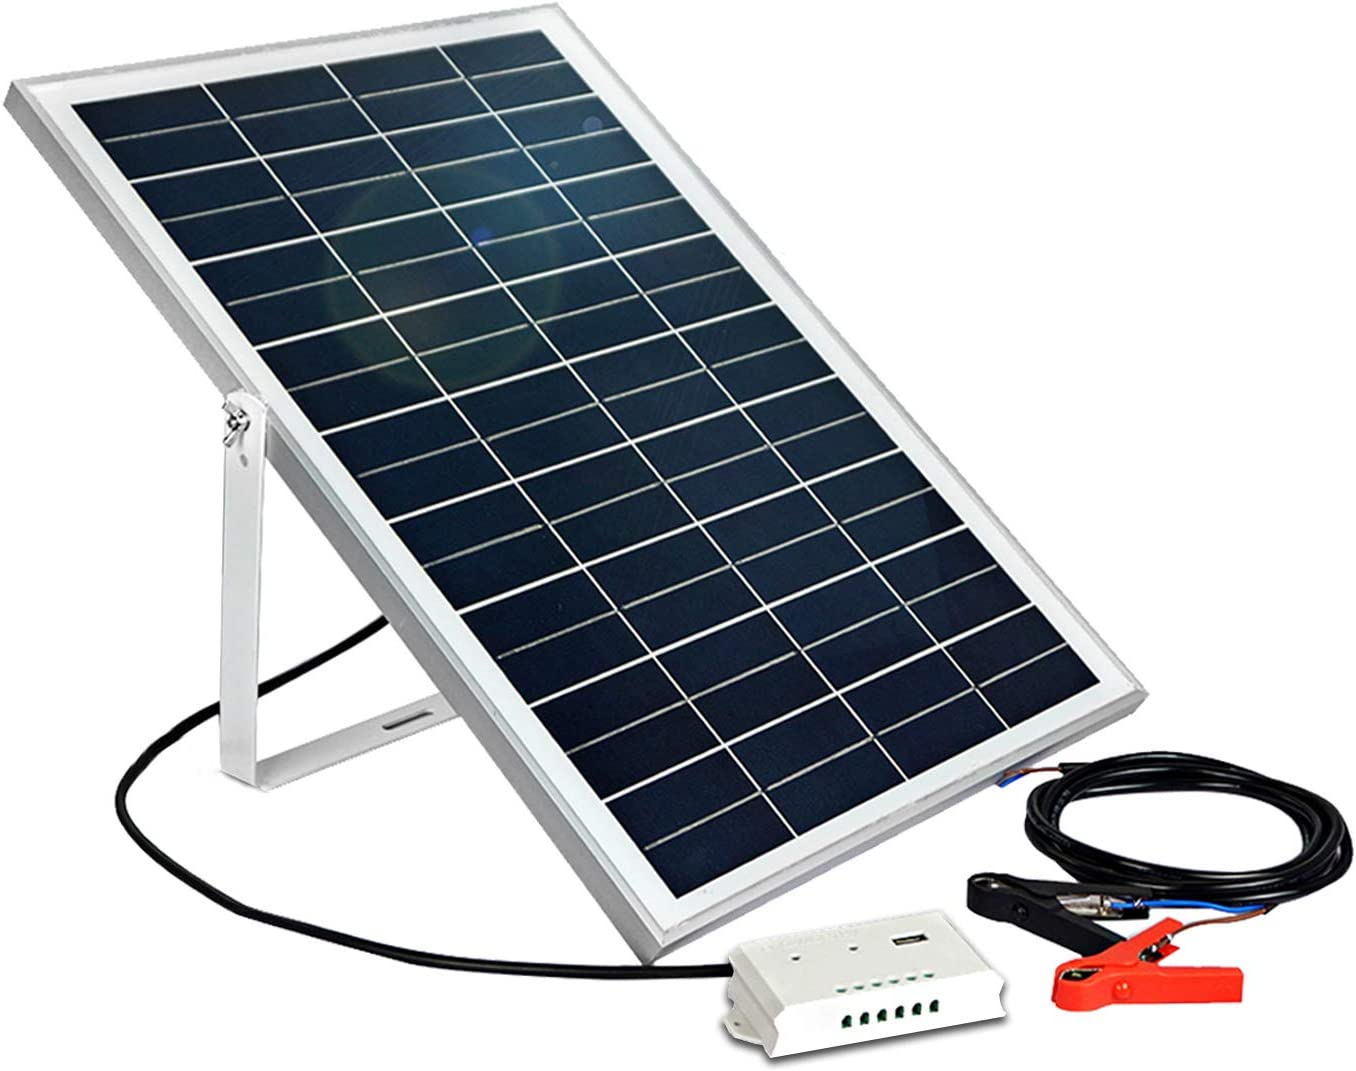 ECO-WORTHY 25W 12V Solar Panel Kit Portable Solar Panel Charge Controller with USB Port U Shaped Mount Bracket 30A Battery Clip for Car Battery Charging,Camper,RV,Boat,Yacht